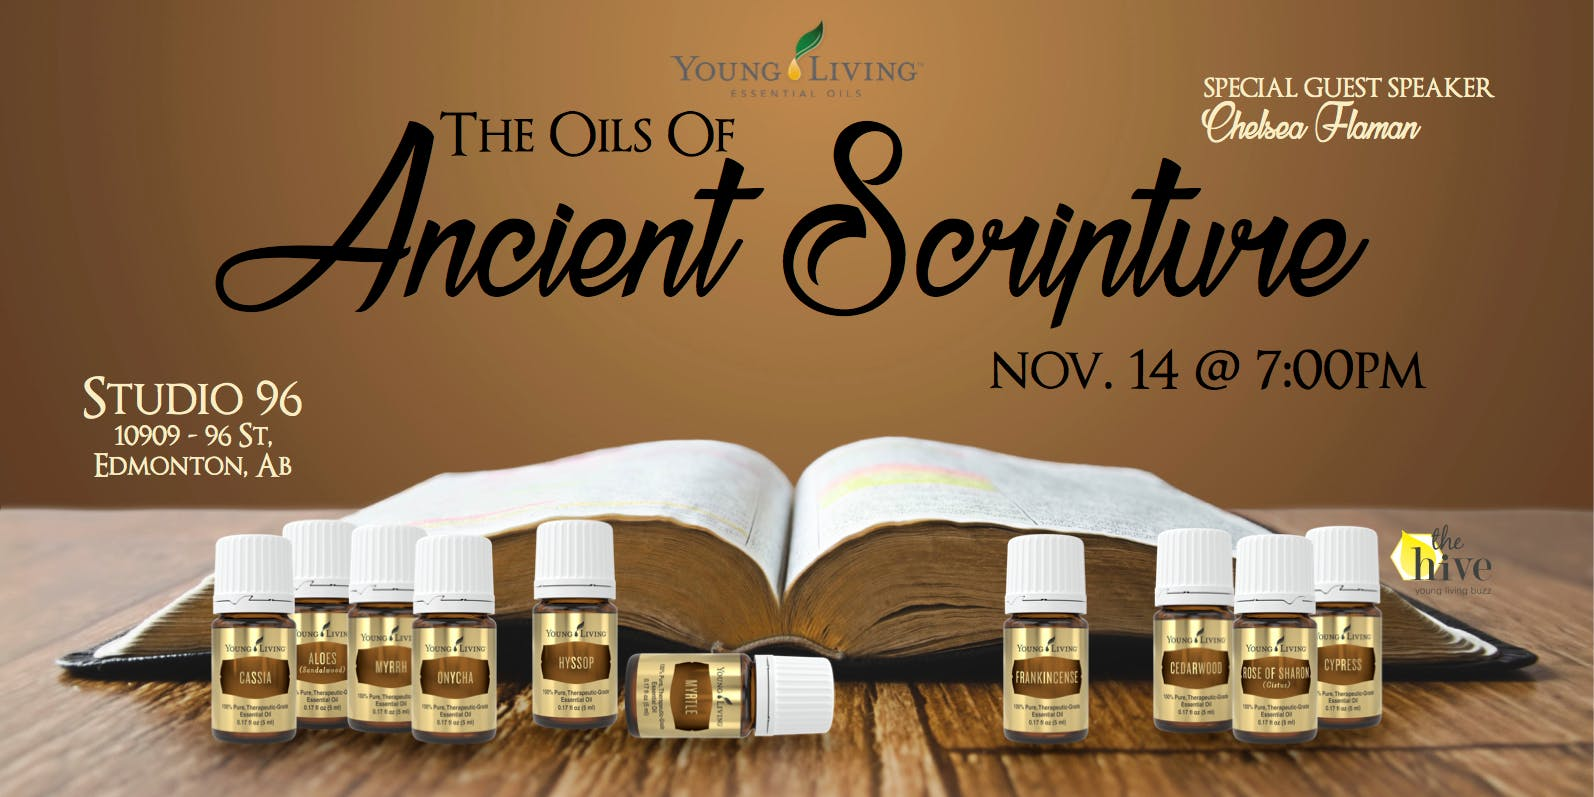 Oils of the Bible: Exploring Ancient Scriptur